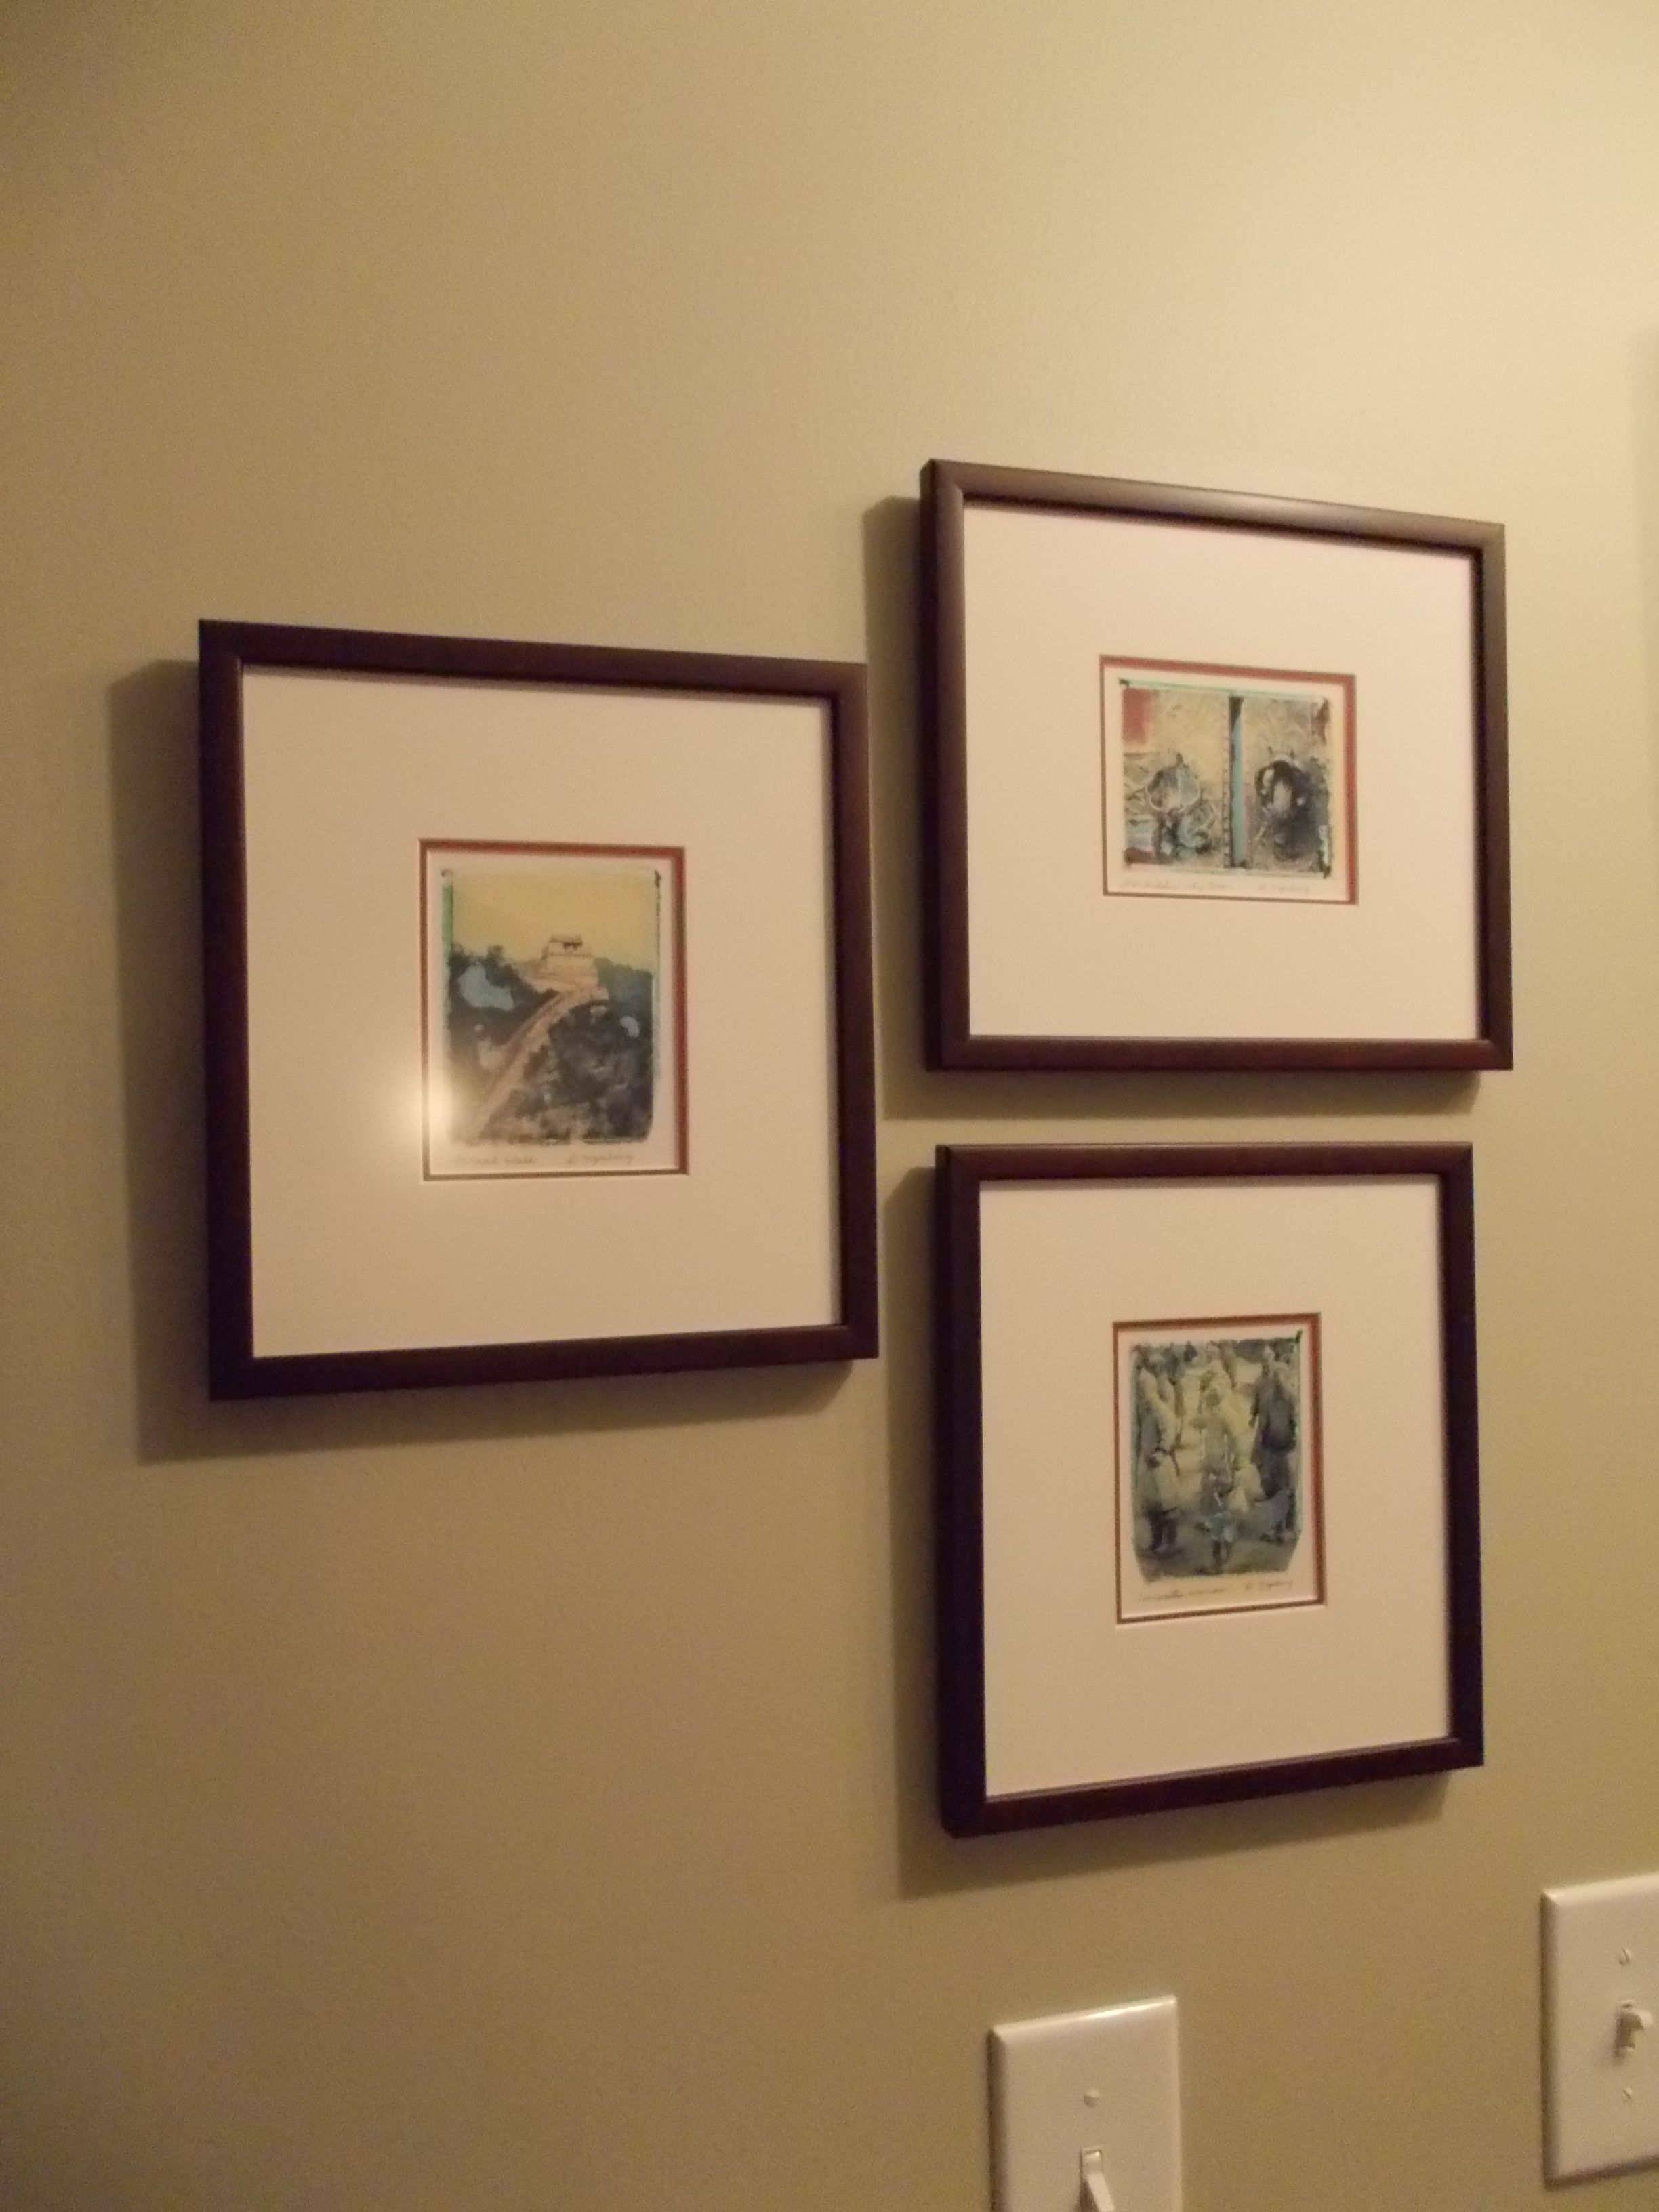 Arranging photos on a wall - How To Arrange 3 Identical Picture Frames On Wall Google Search